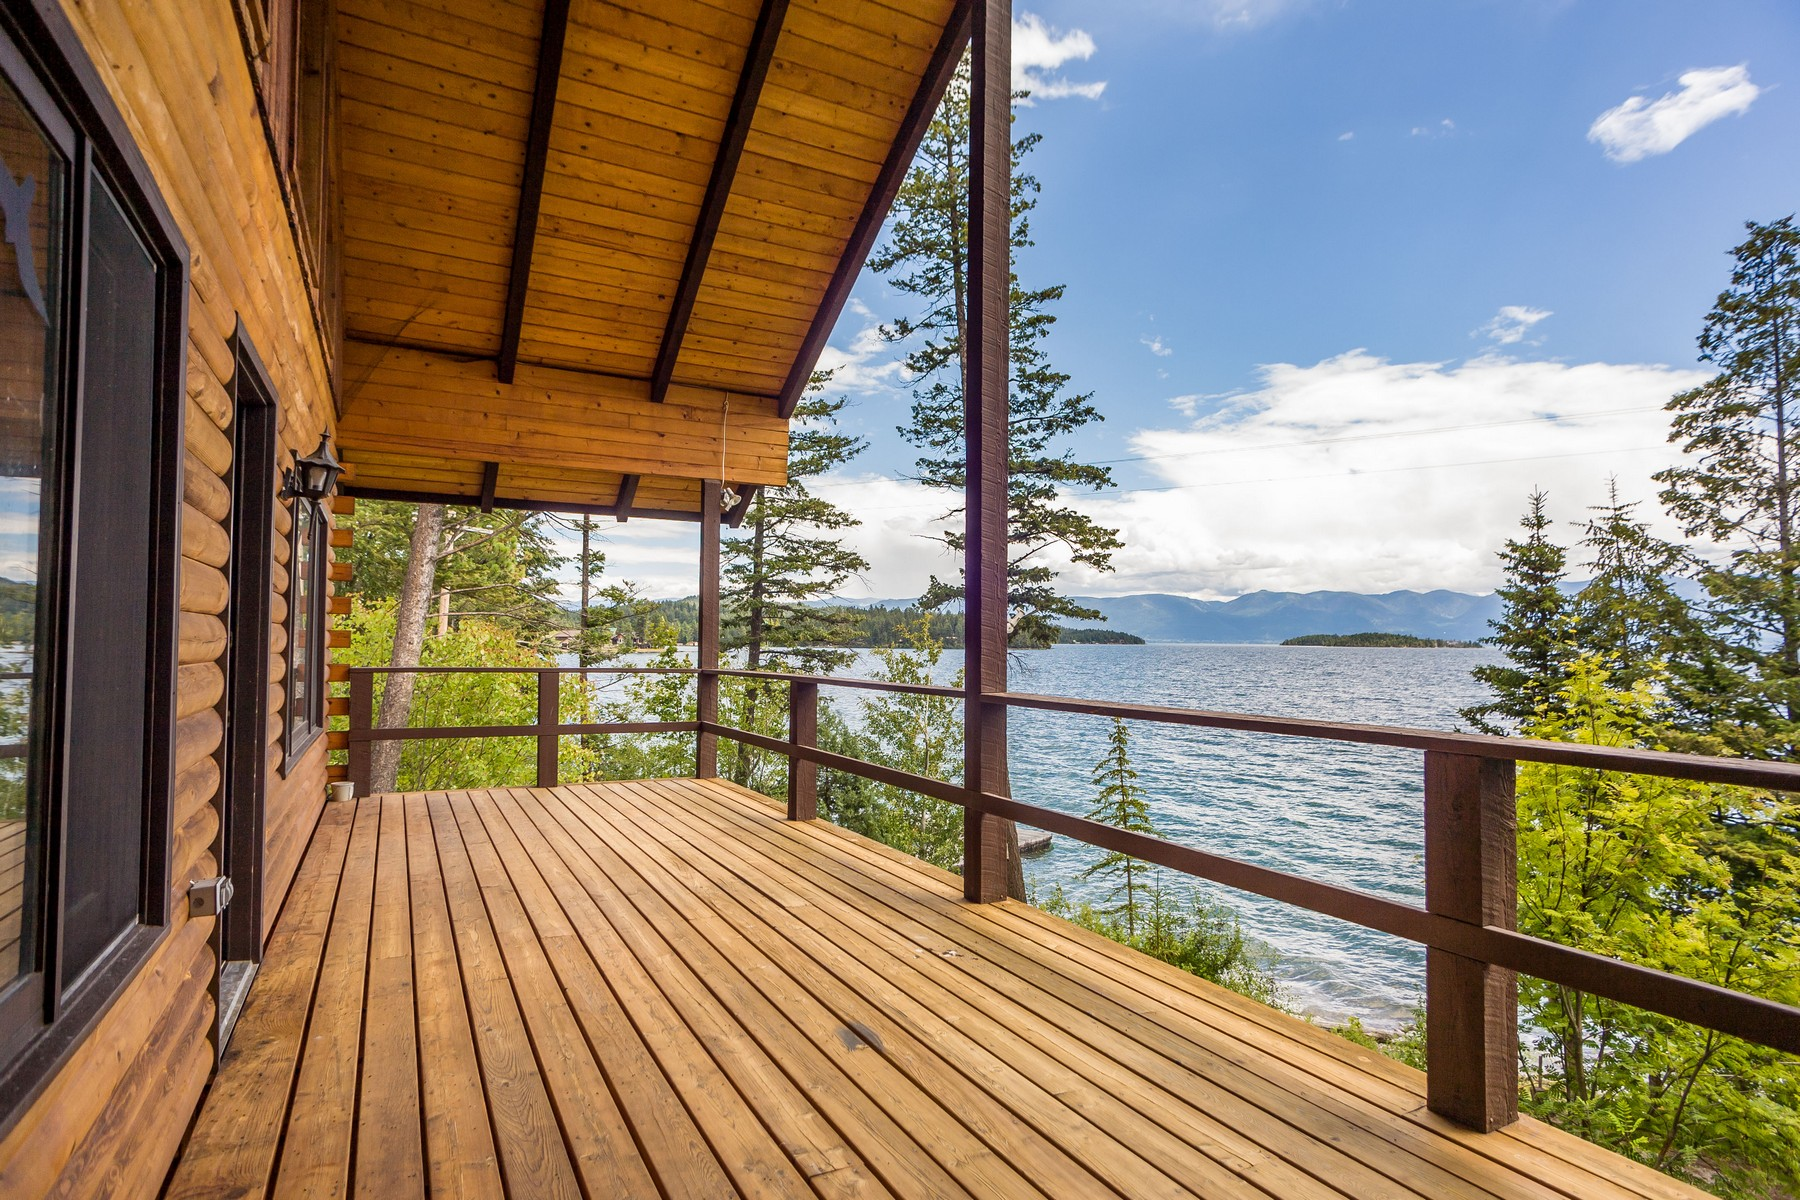 Additional photo for property listing at 22563 Rollins Lake Shore Dr , Rollins, MT 59931 22563  Rollins Lake Shore Dr Rollins, Montana 59931 United States